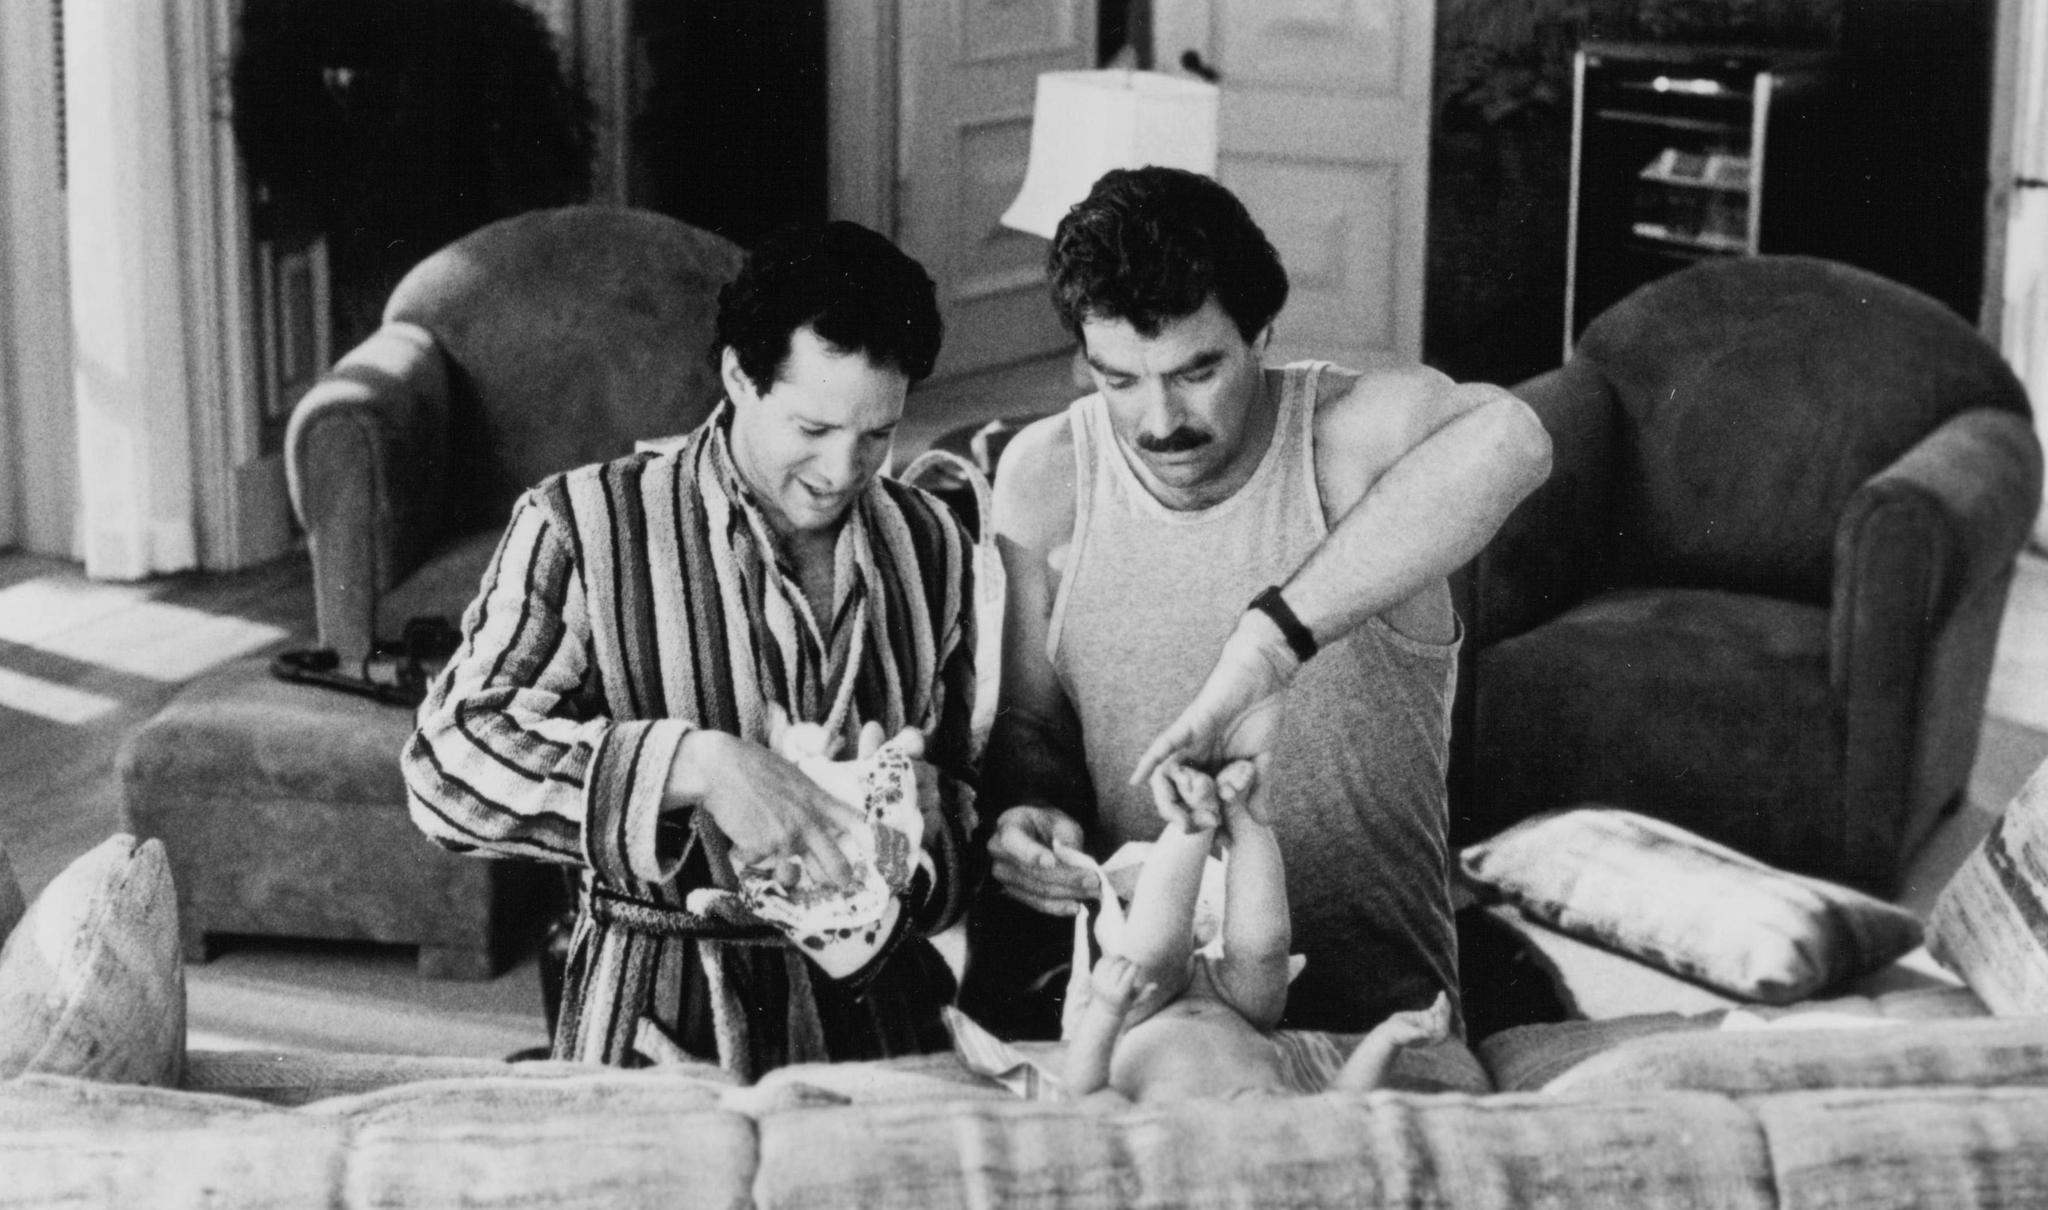 Steve Guttenberg, Tom Selleck, Lisa Blair, and Michelle Blair in 3 Men and a Baby (1987)